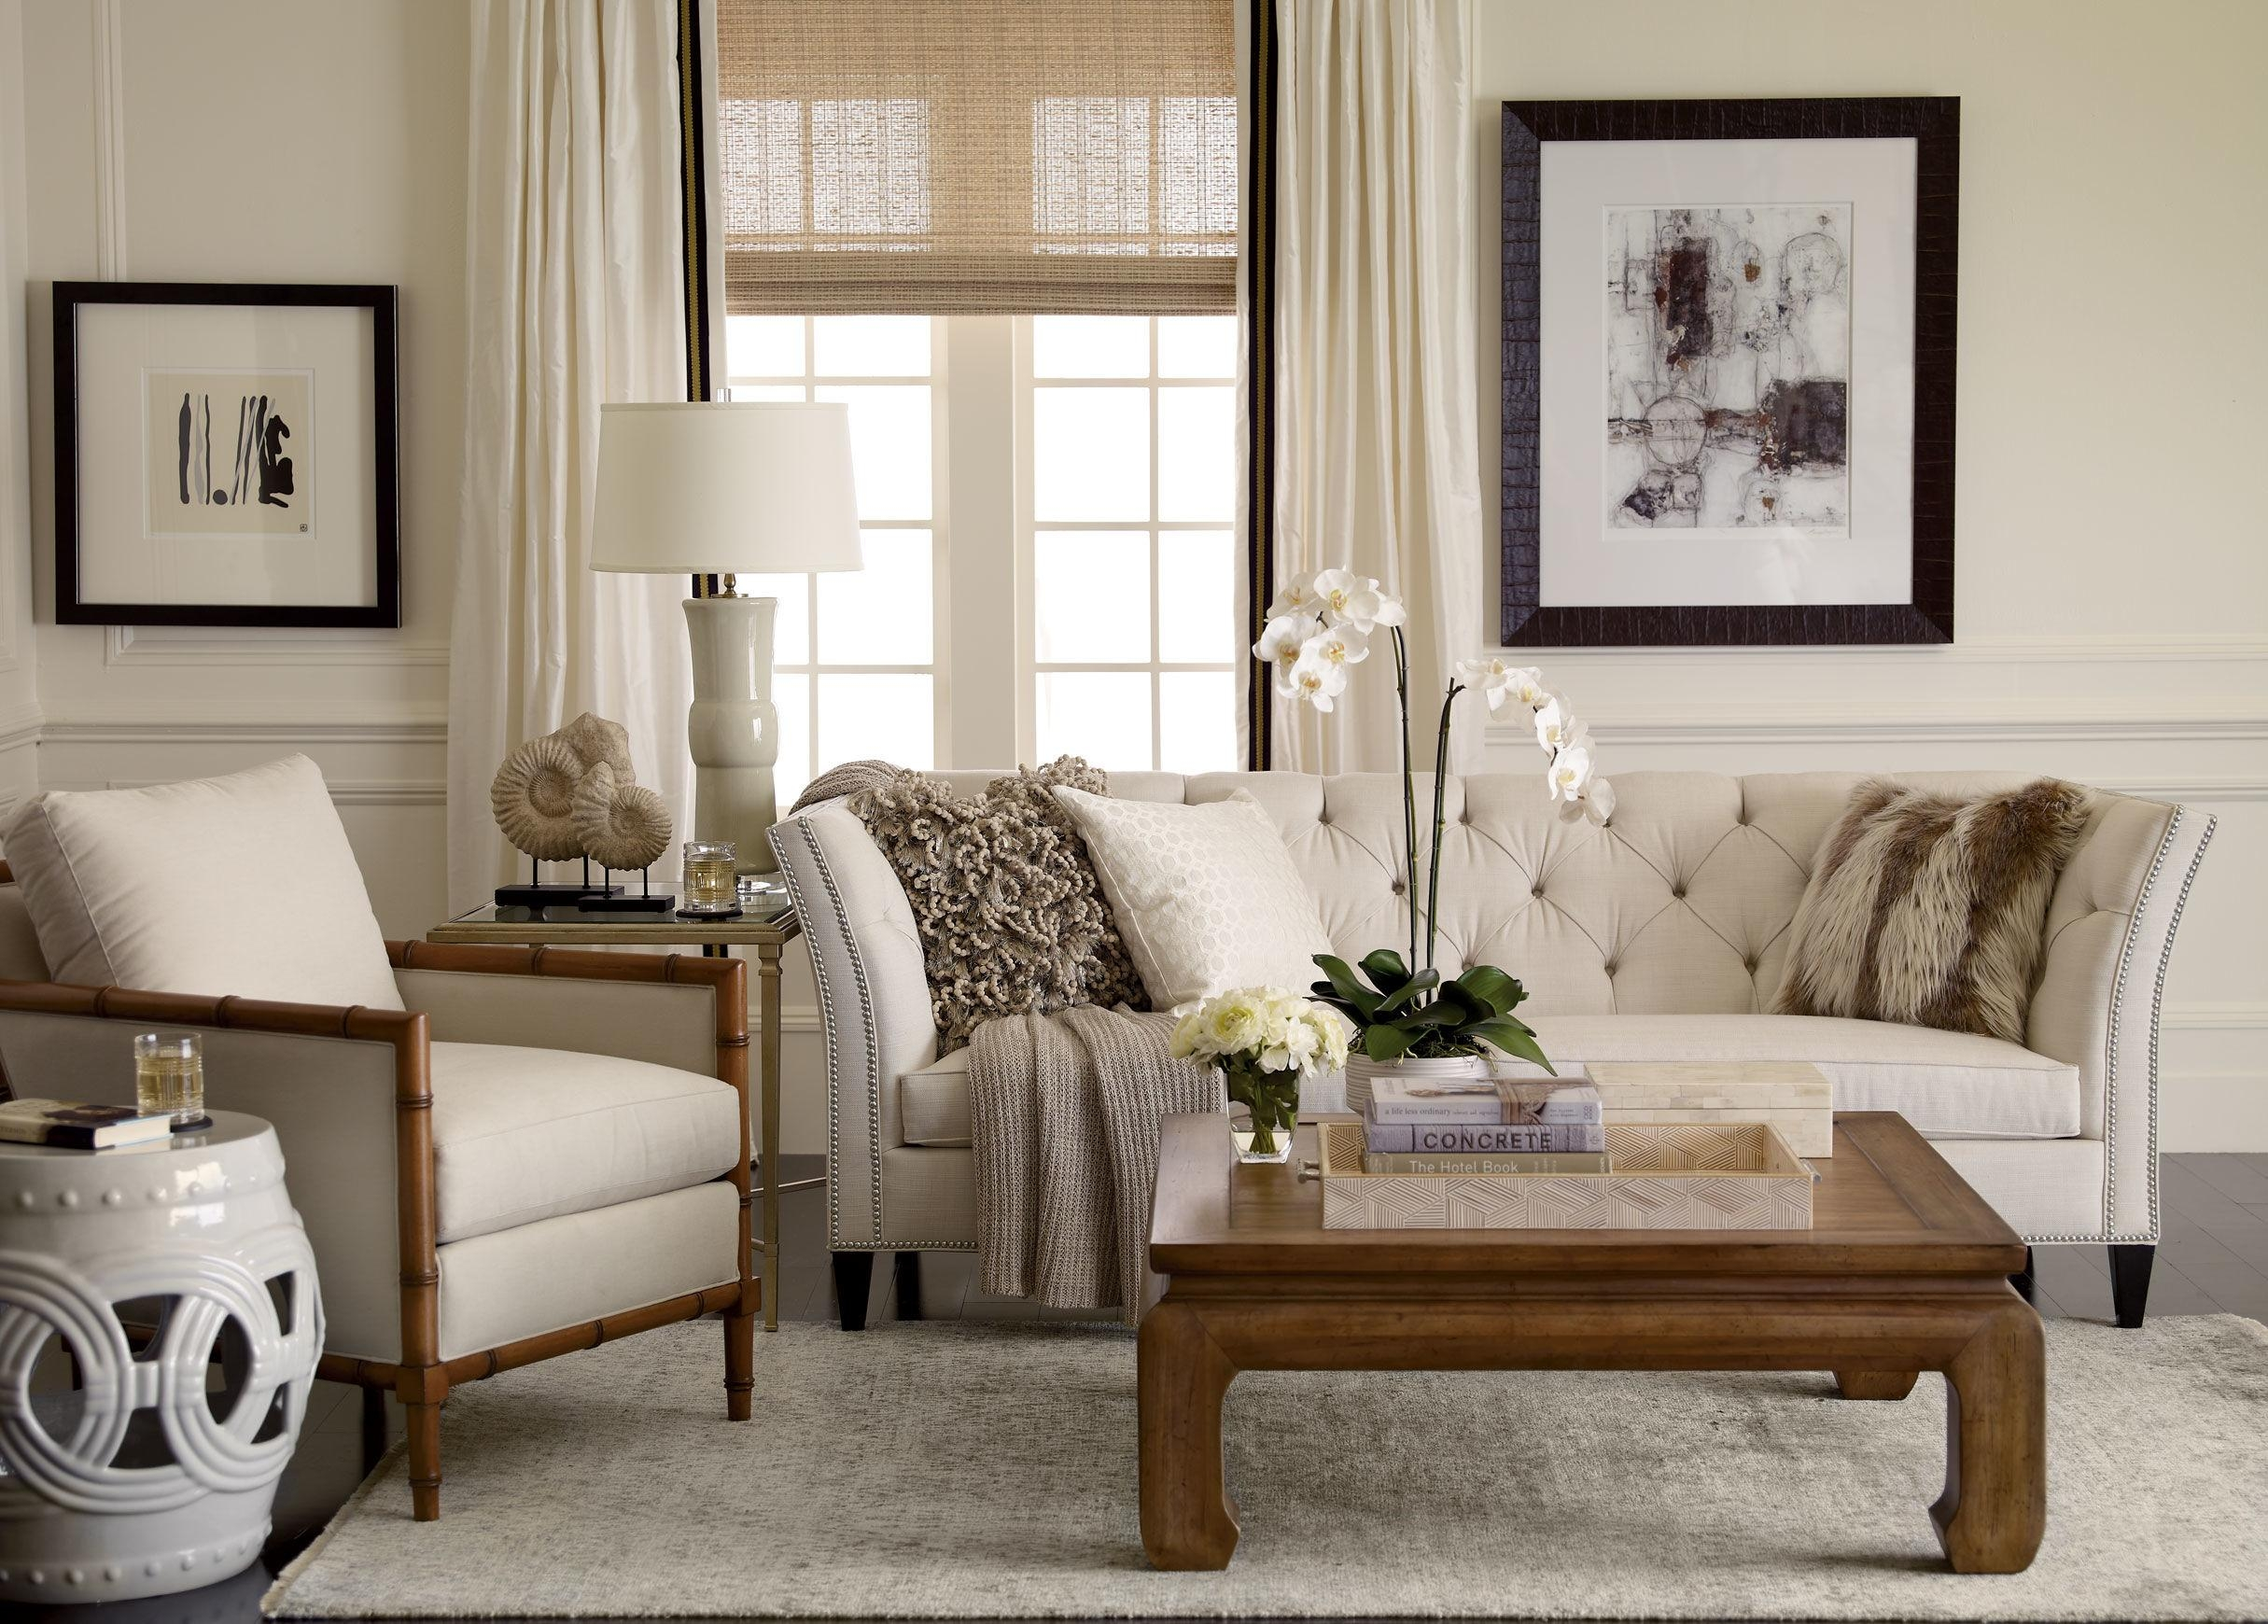 Ethan Allen Leather Furniture For Charming And Comfortable Home Throughout Allen White Sofas (View 11 of 20)